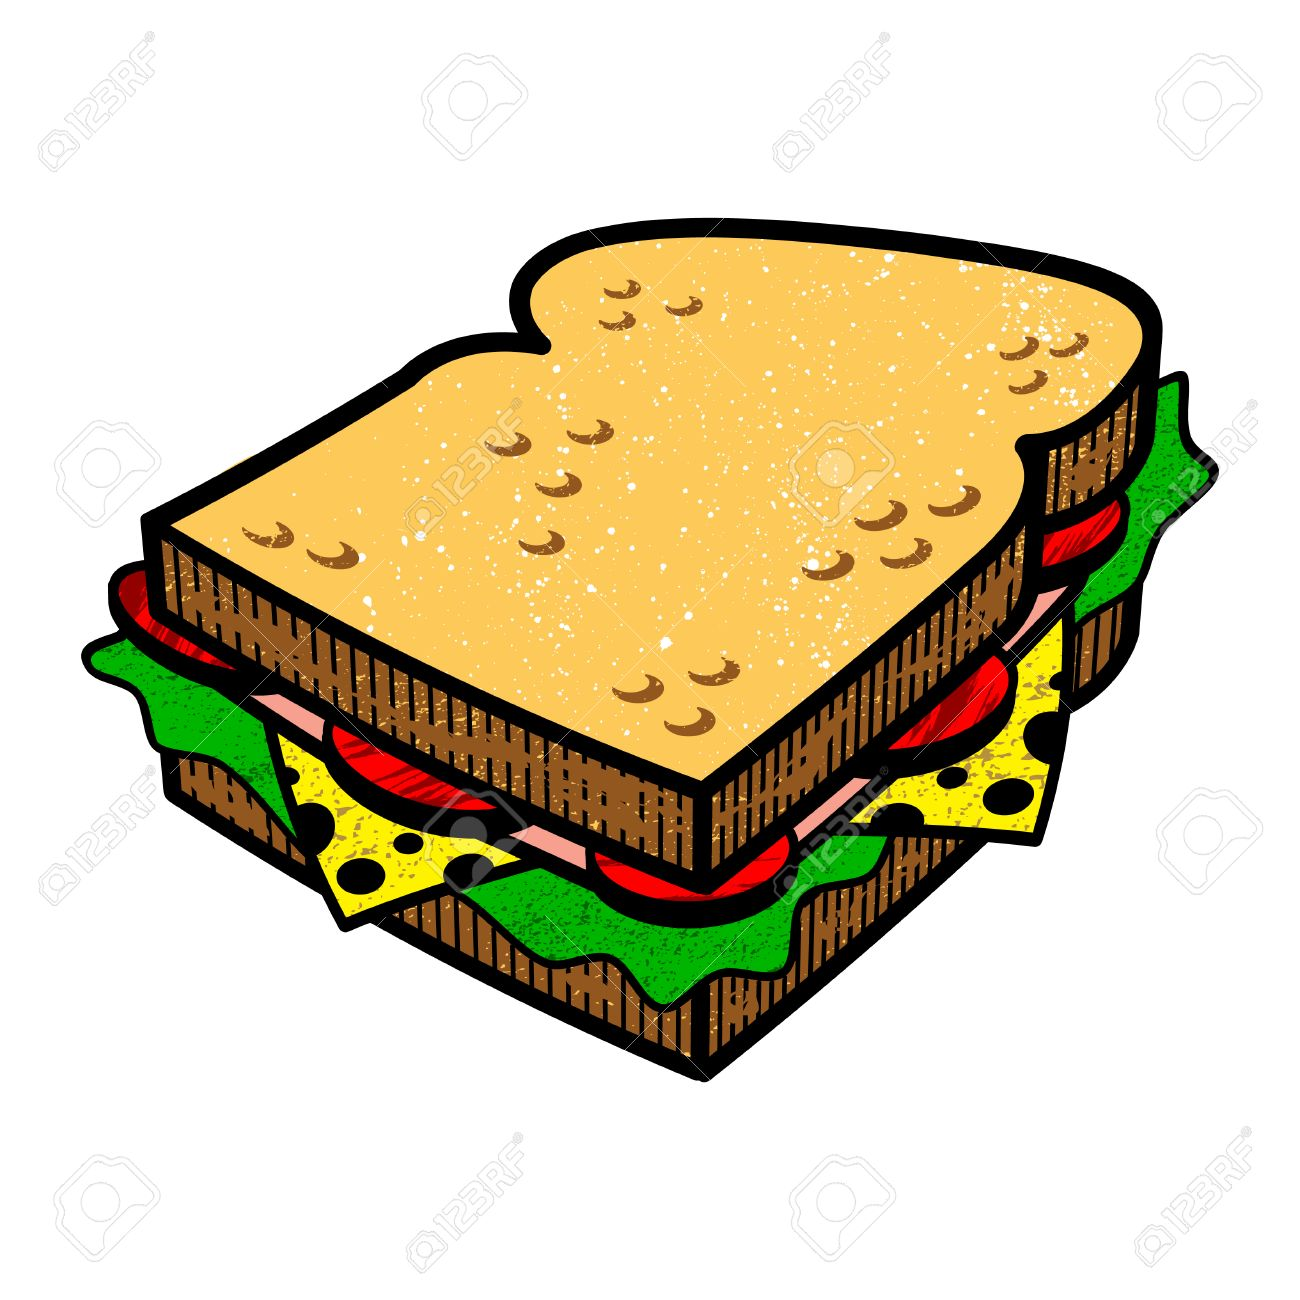 sandwich cartoon vector illlustration royalty free cliparts vectors and stock illustration image 49671214 sandwich cartoon vector illlustration